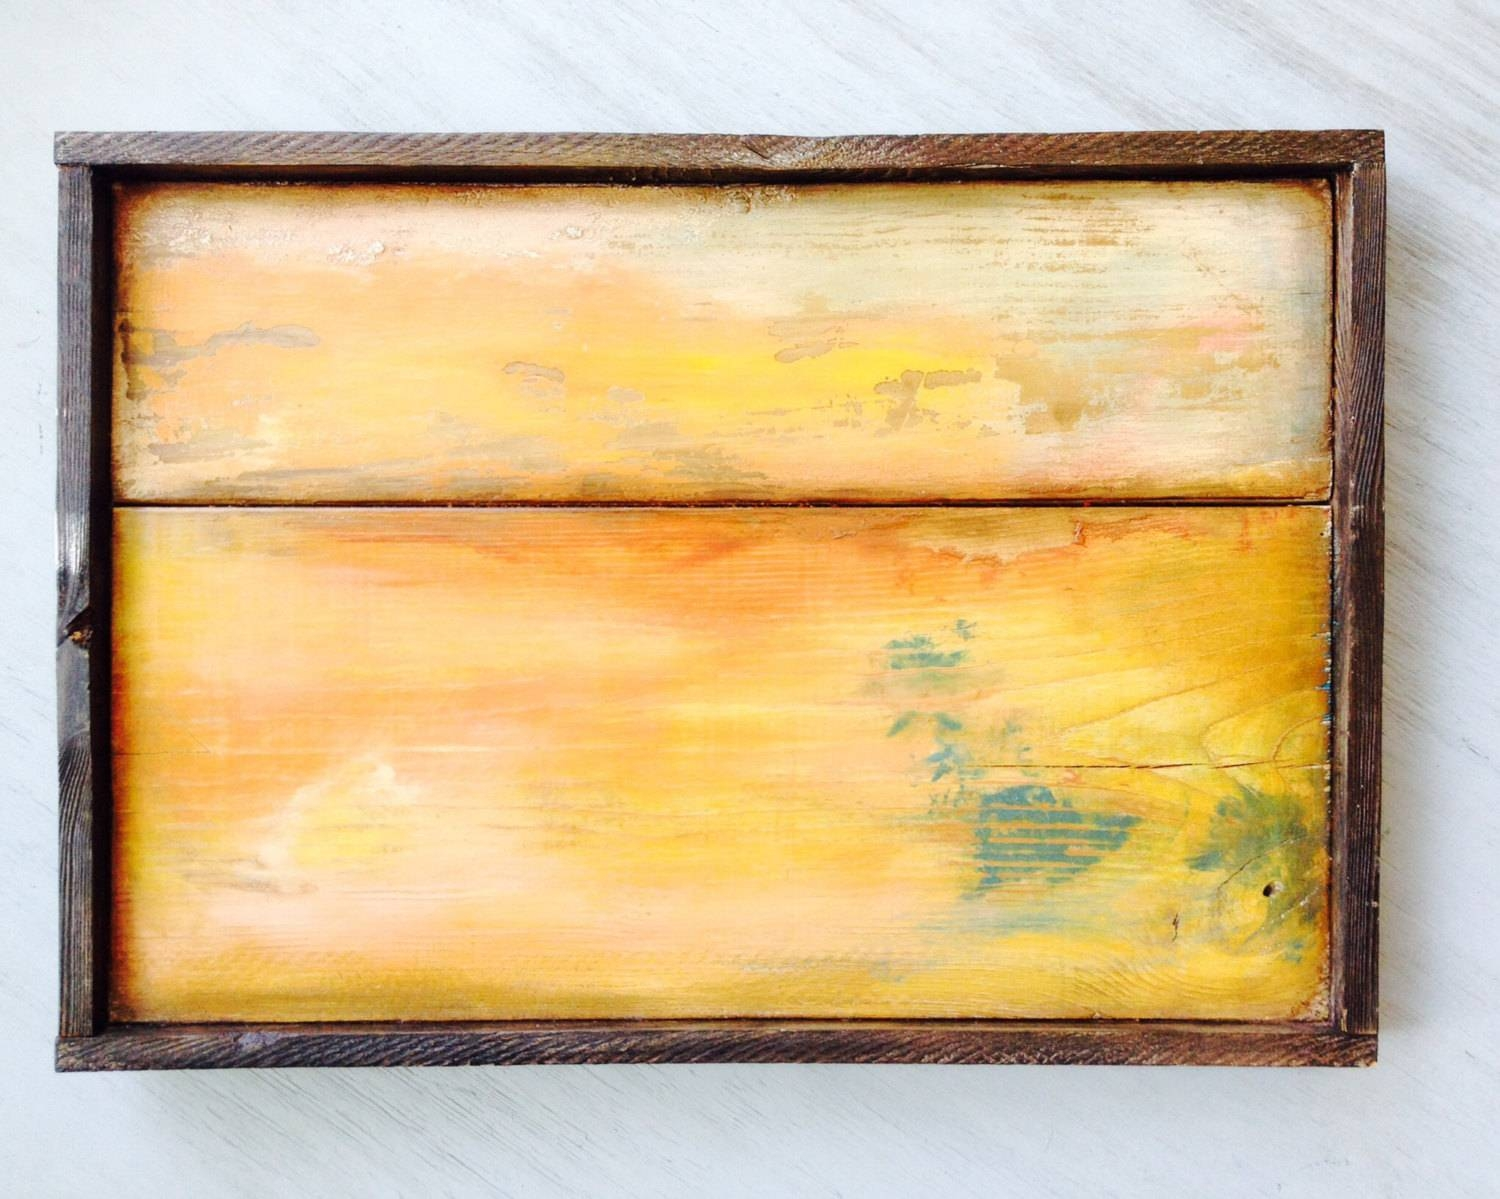 Distressed Wood Boards Reclaimed Wood Wall Art Solid Wood Inside Most Current Yellow And Blue Wall Art (View 3 of 20)